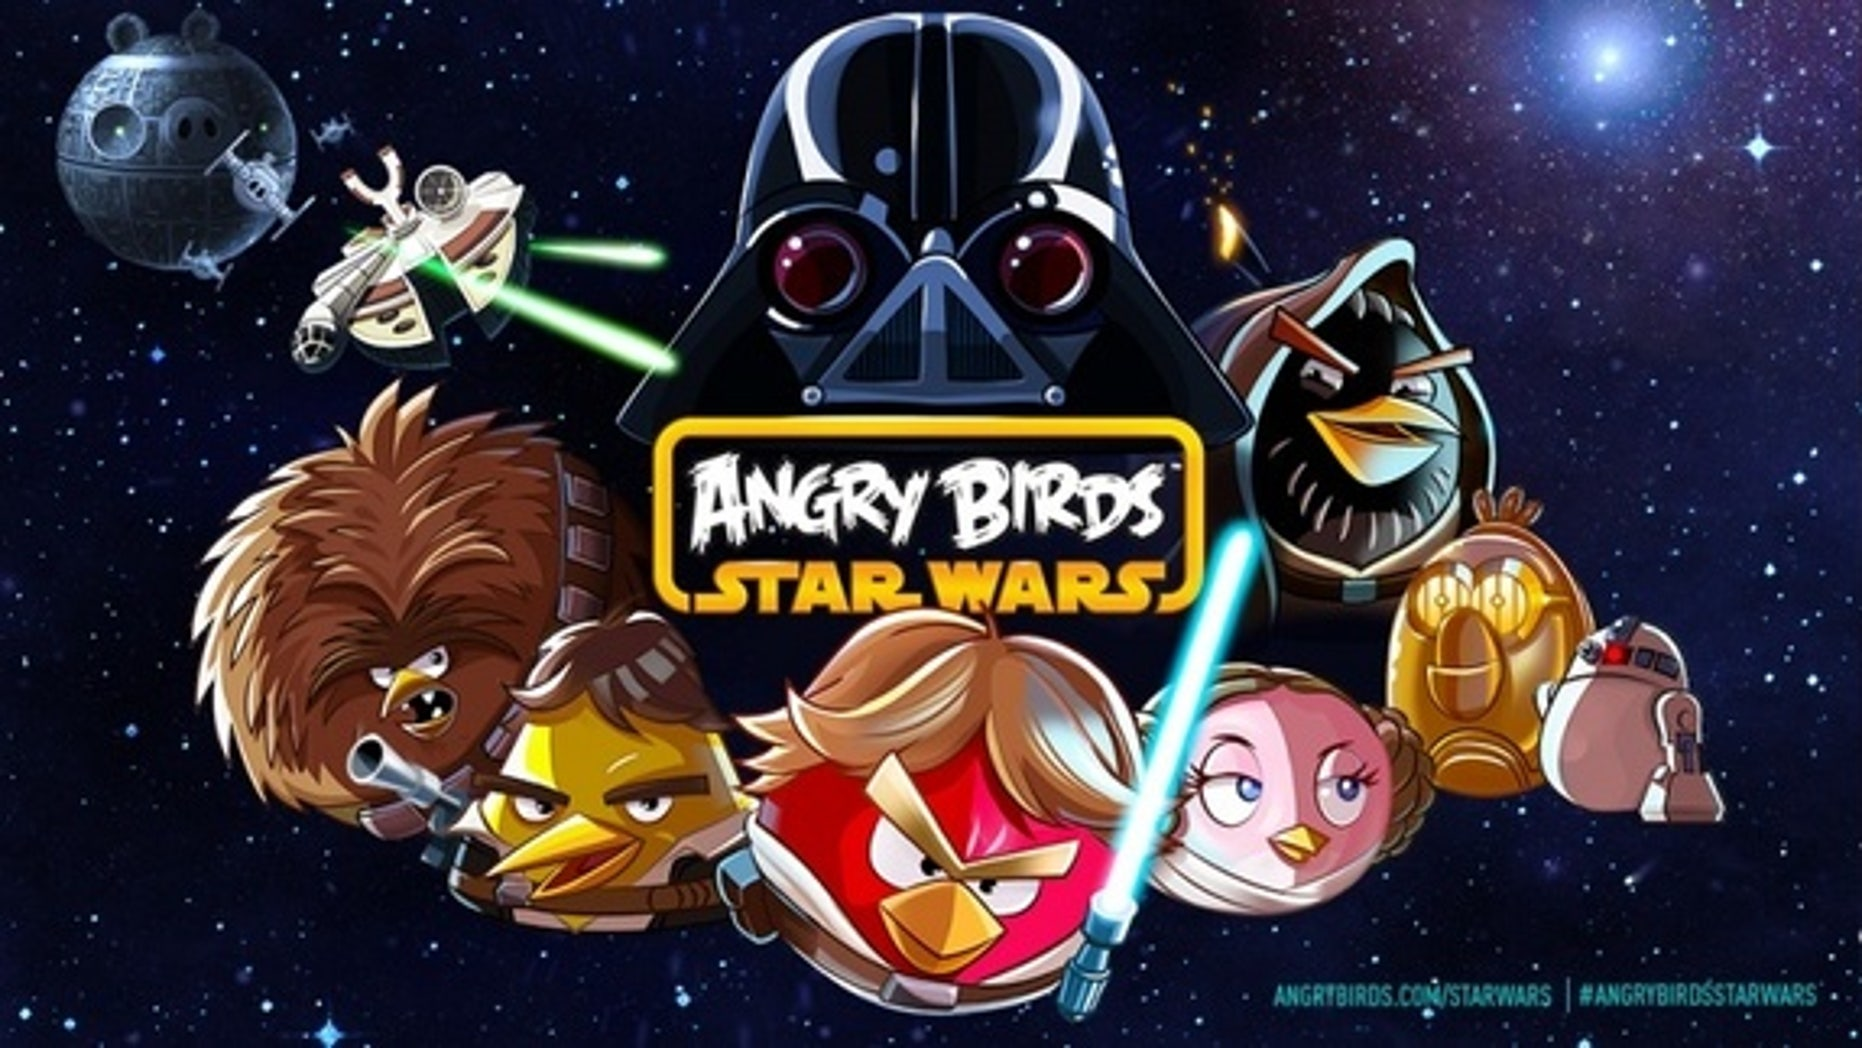 """""""Angry Birds Star Wars,"""" which will be released Nov. 8, 2012, features the characters, stories and settings of the beloved """"Star Wars"""" films."""